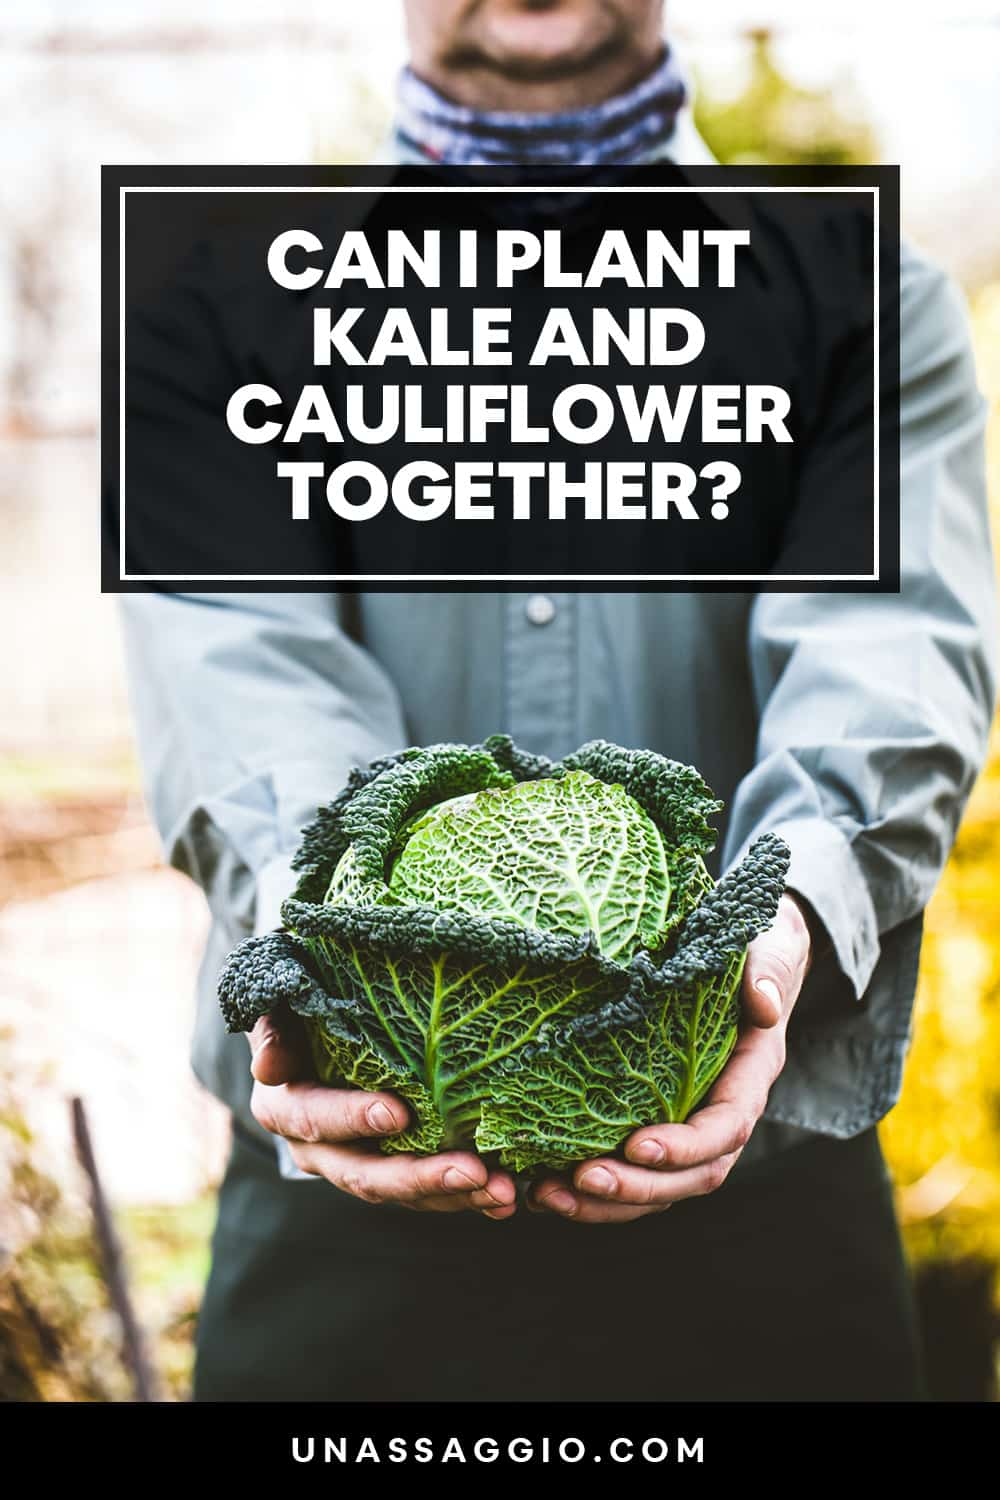 Can kale and cauliflower be planted together?